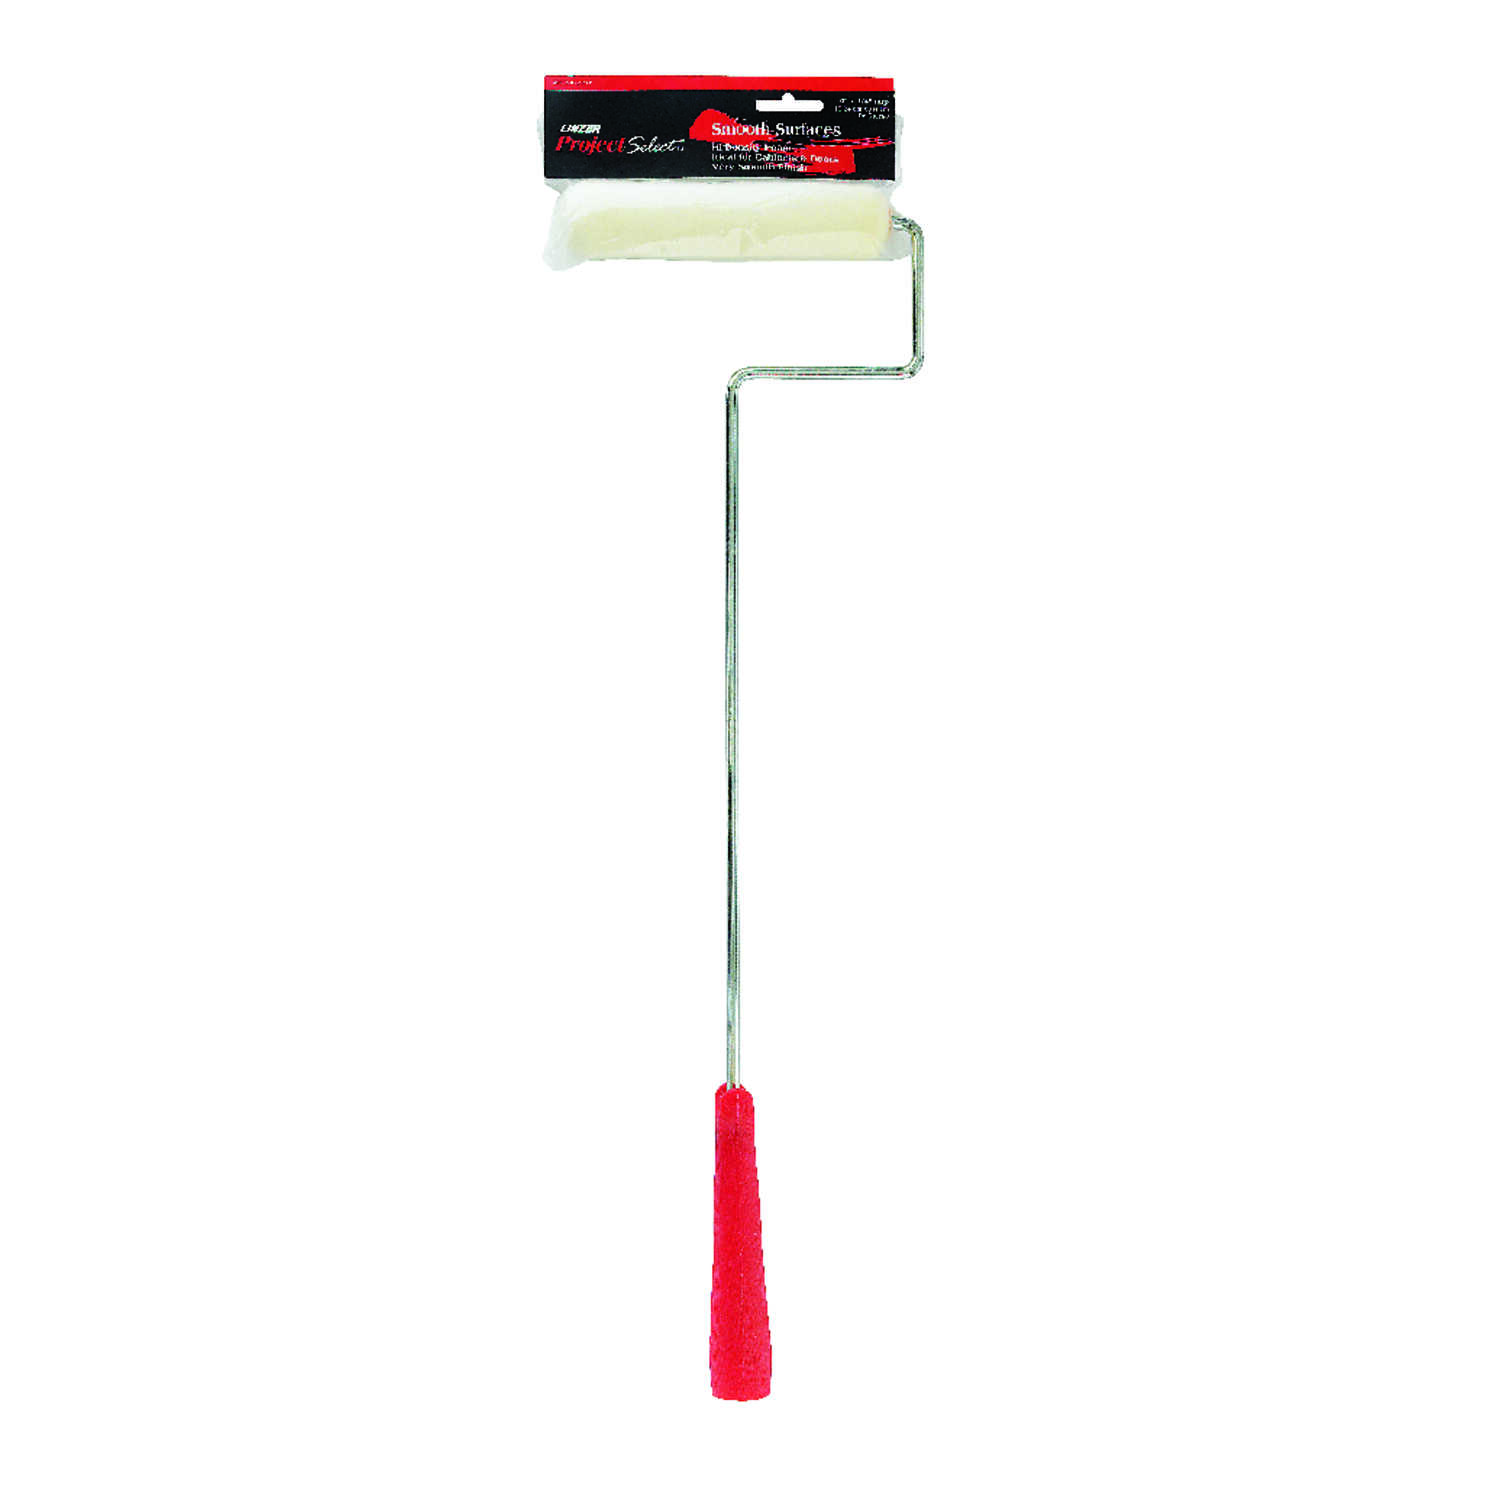 Linzer  Project Select  6 in. W Mini  Paint Roller Frame and Cover  Threaded End